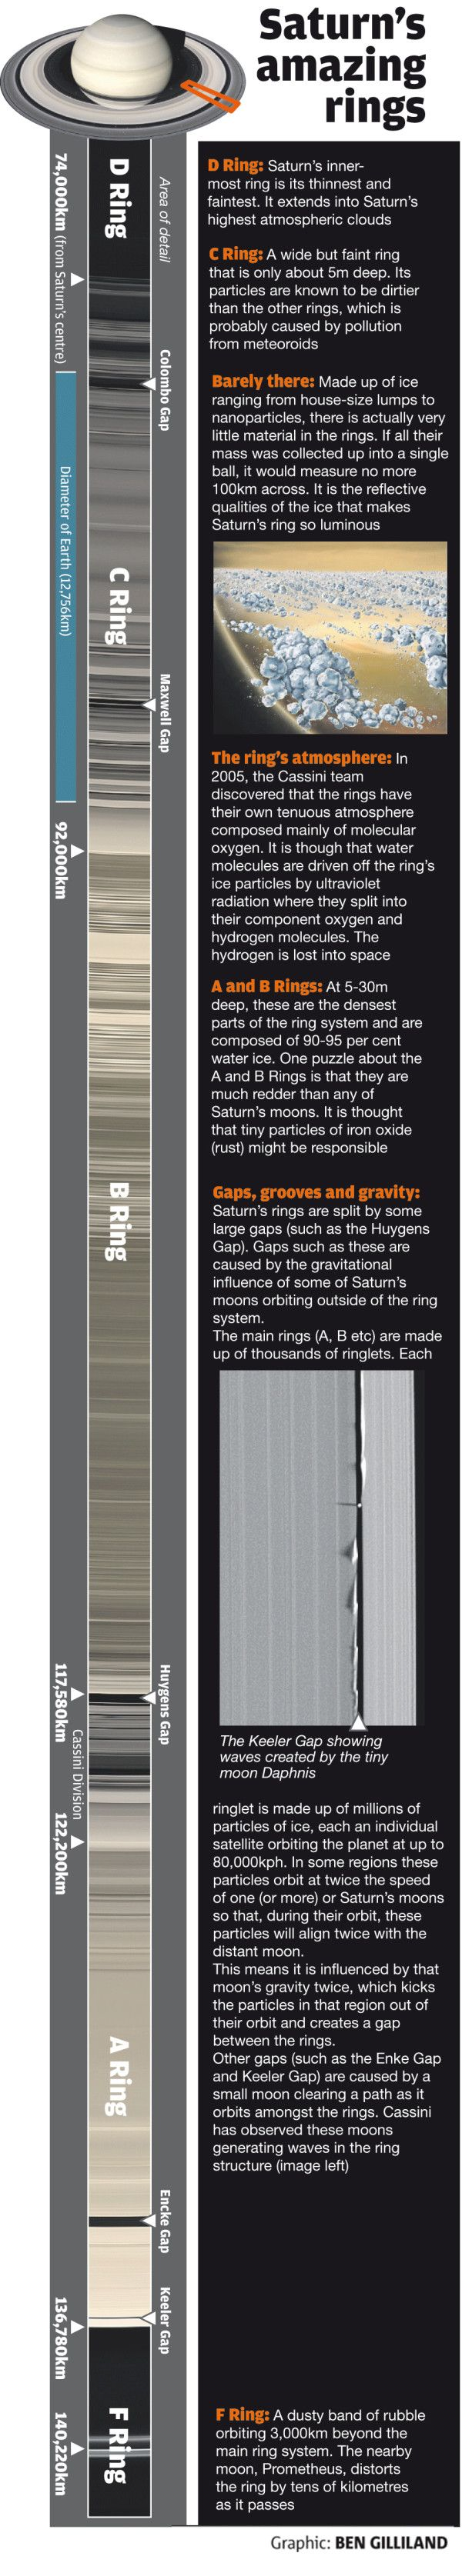 Celebrate 15 years since the launch of the awesome Cassini probe by revelling in Saturn's rings #infographic